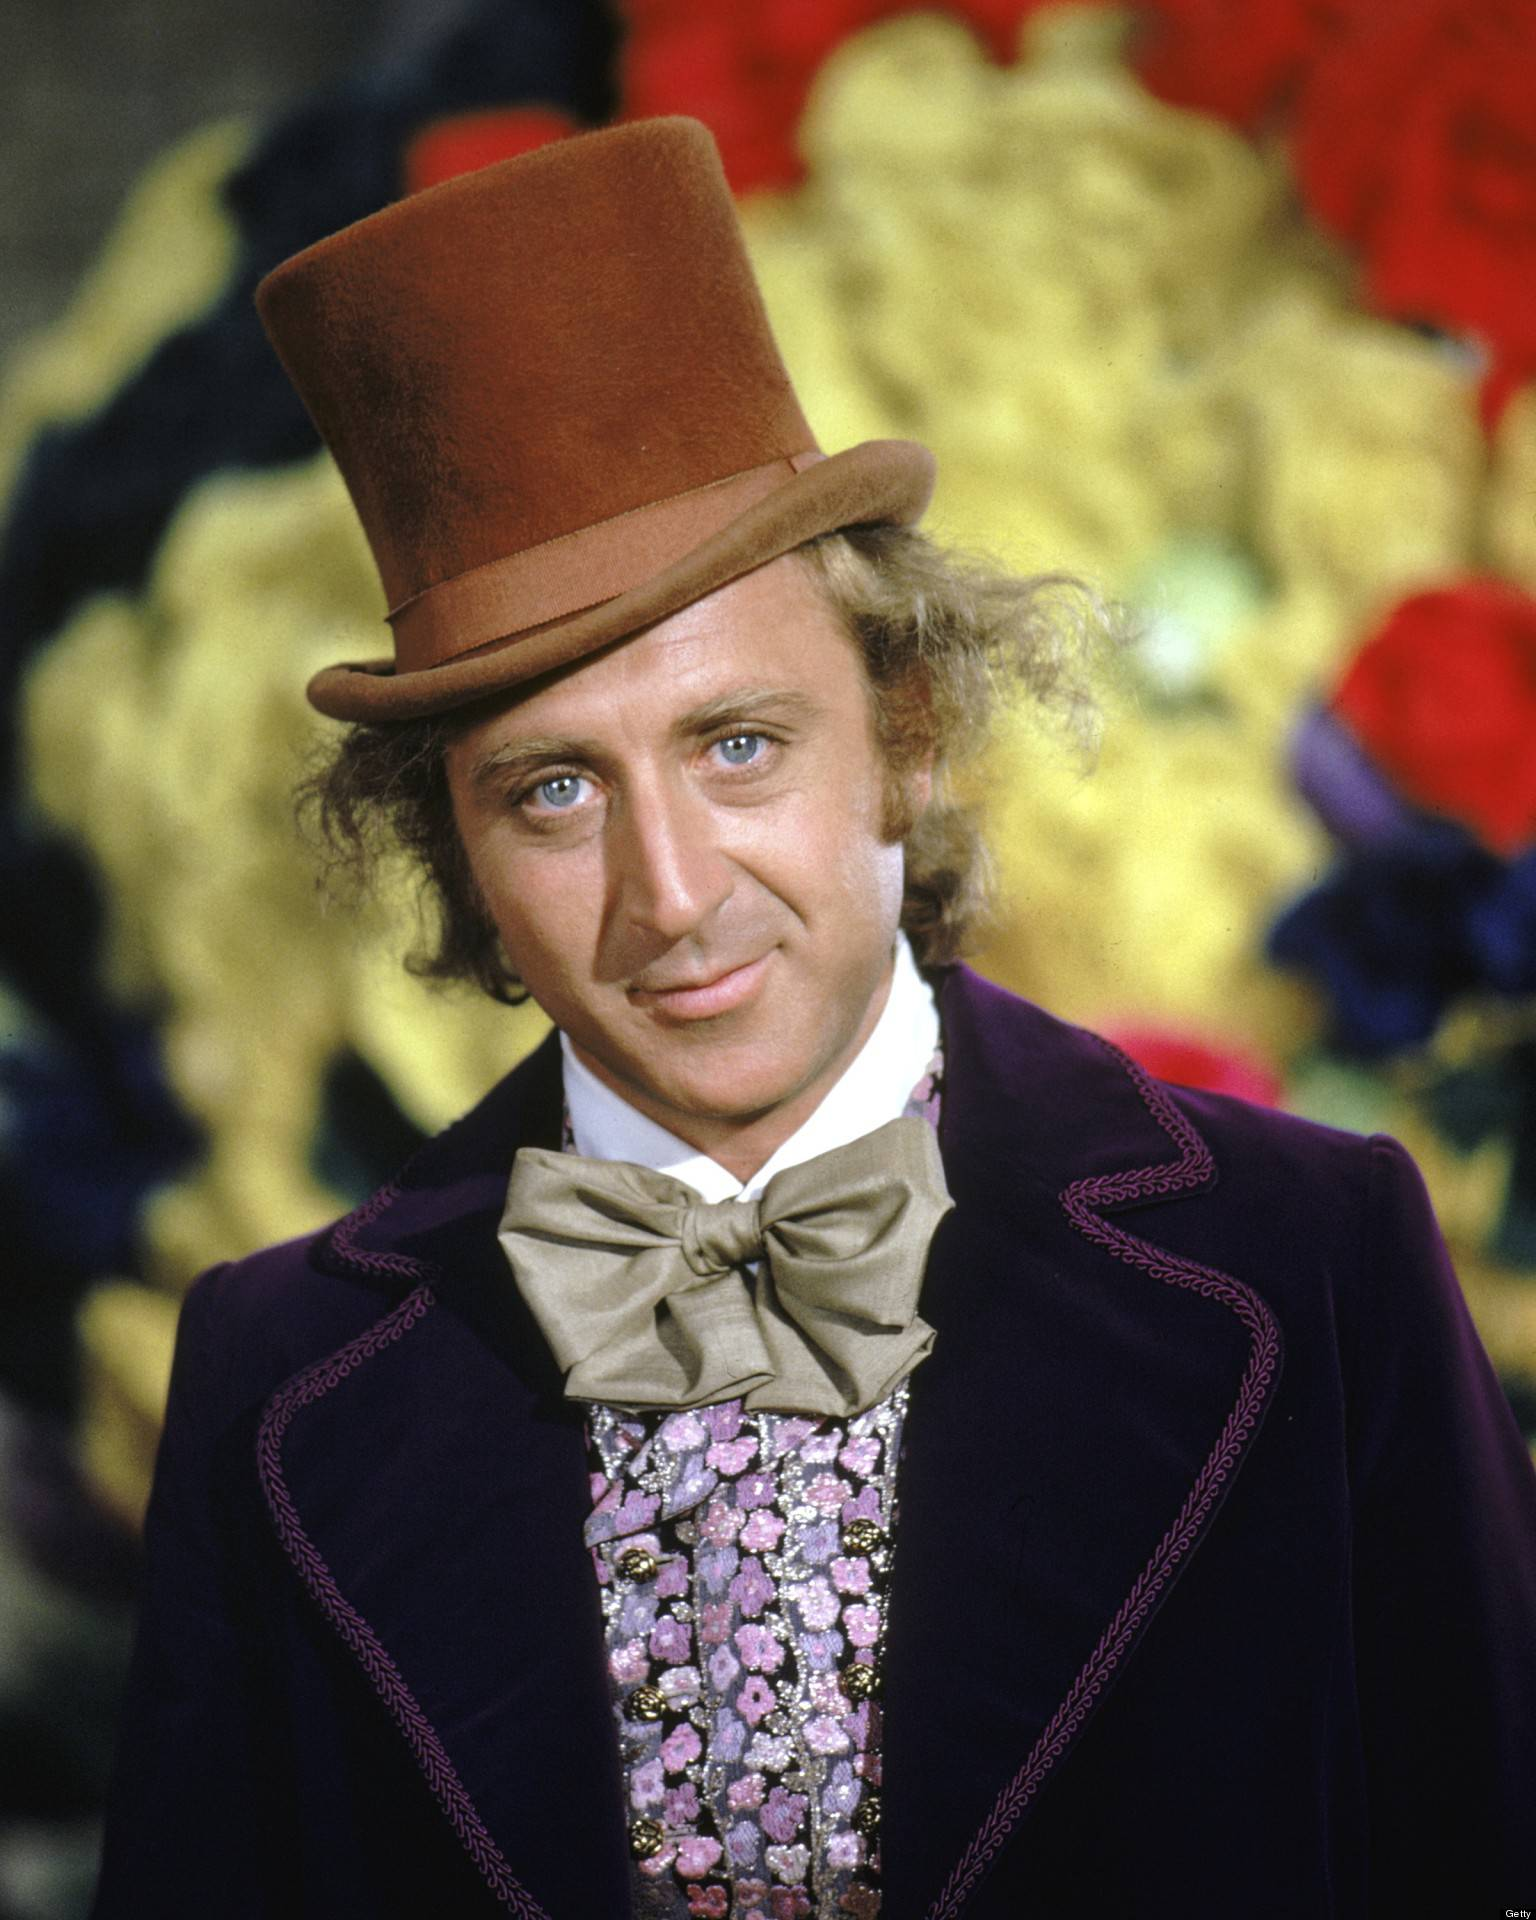 Willy Wonka and the chocolate factory - film classico del 1971 con Gene Wilder